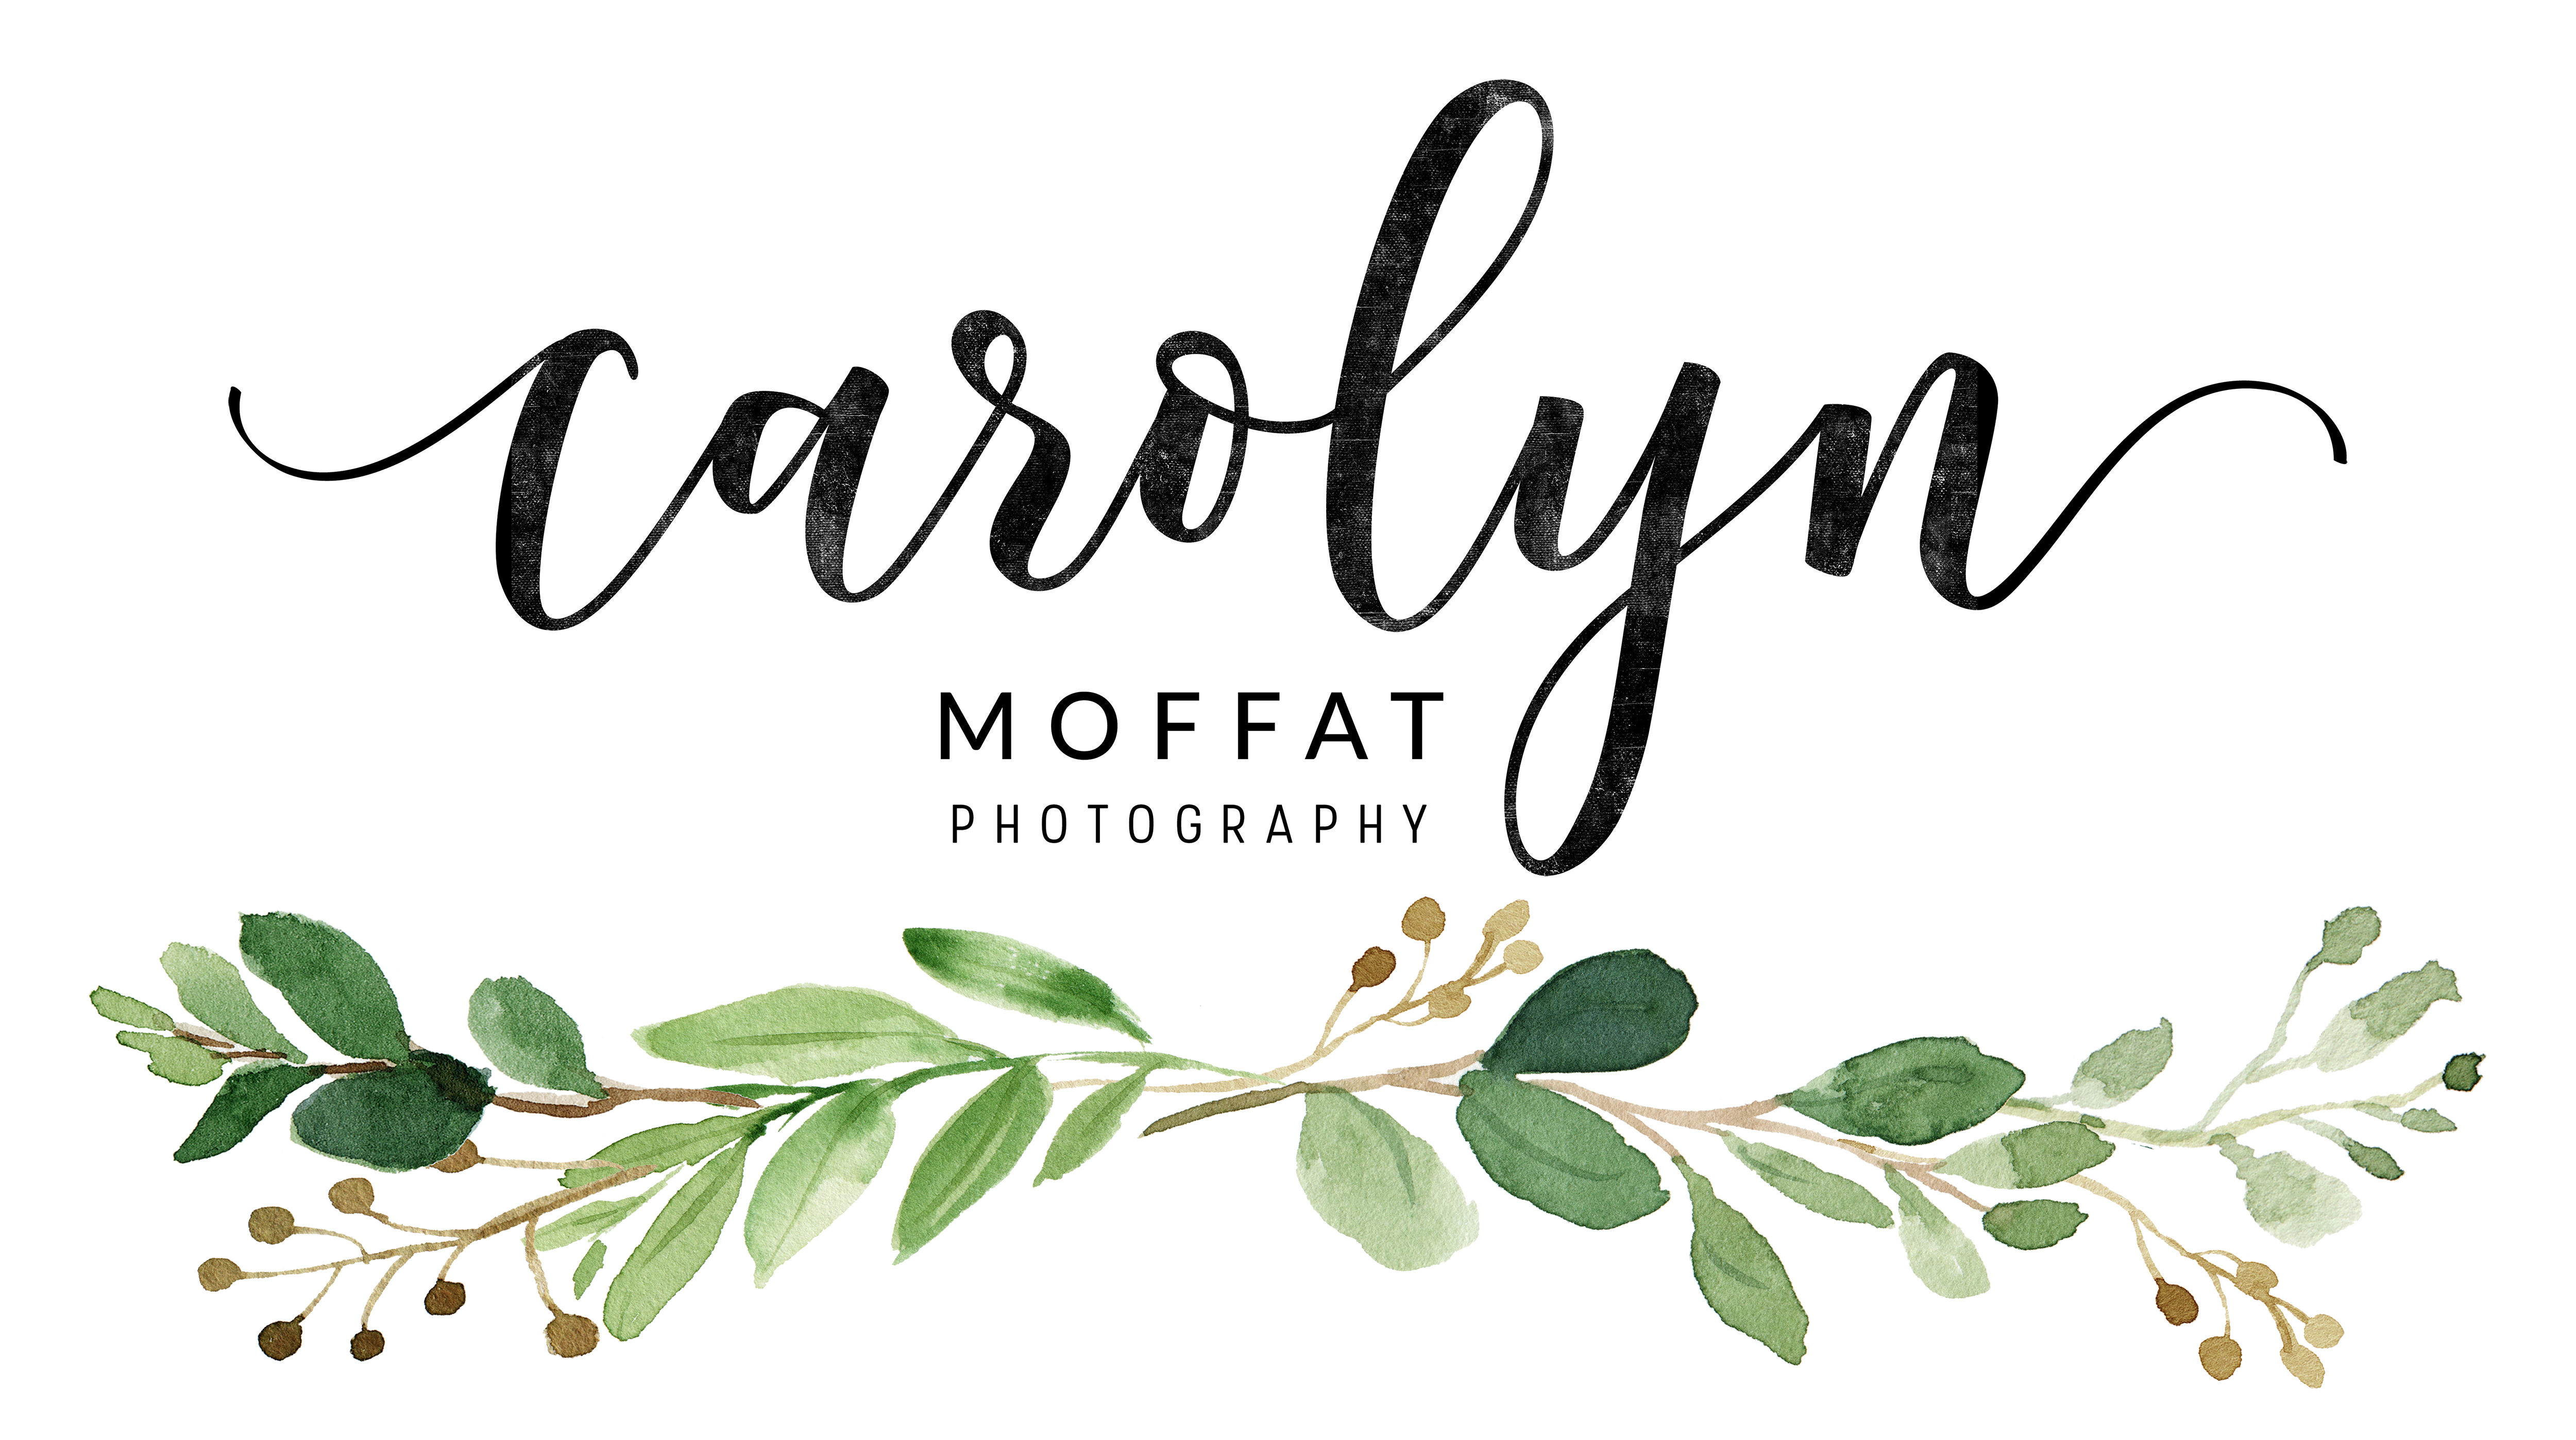 Carolyn Moffat Photography